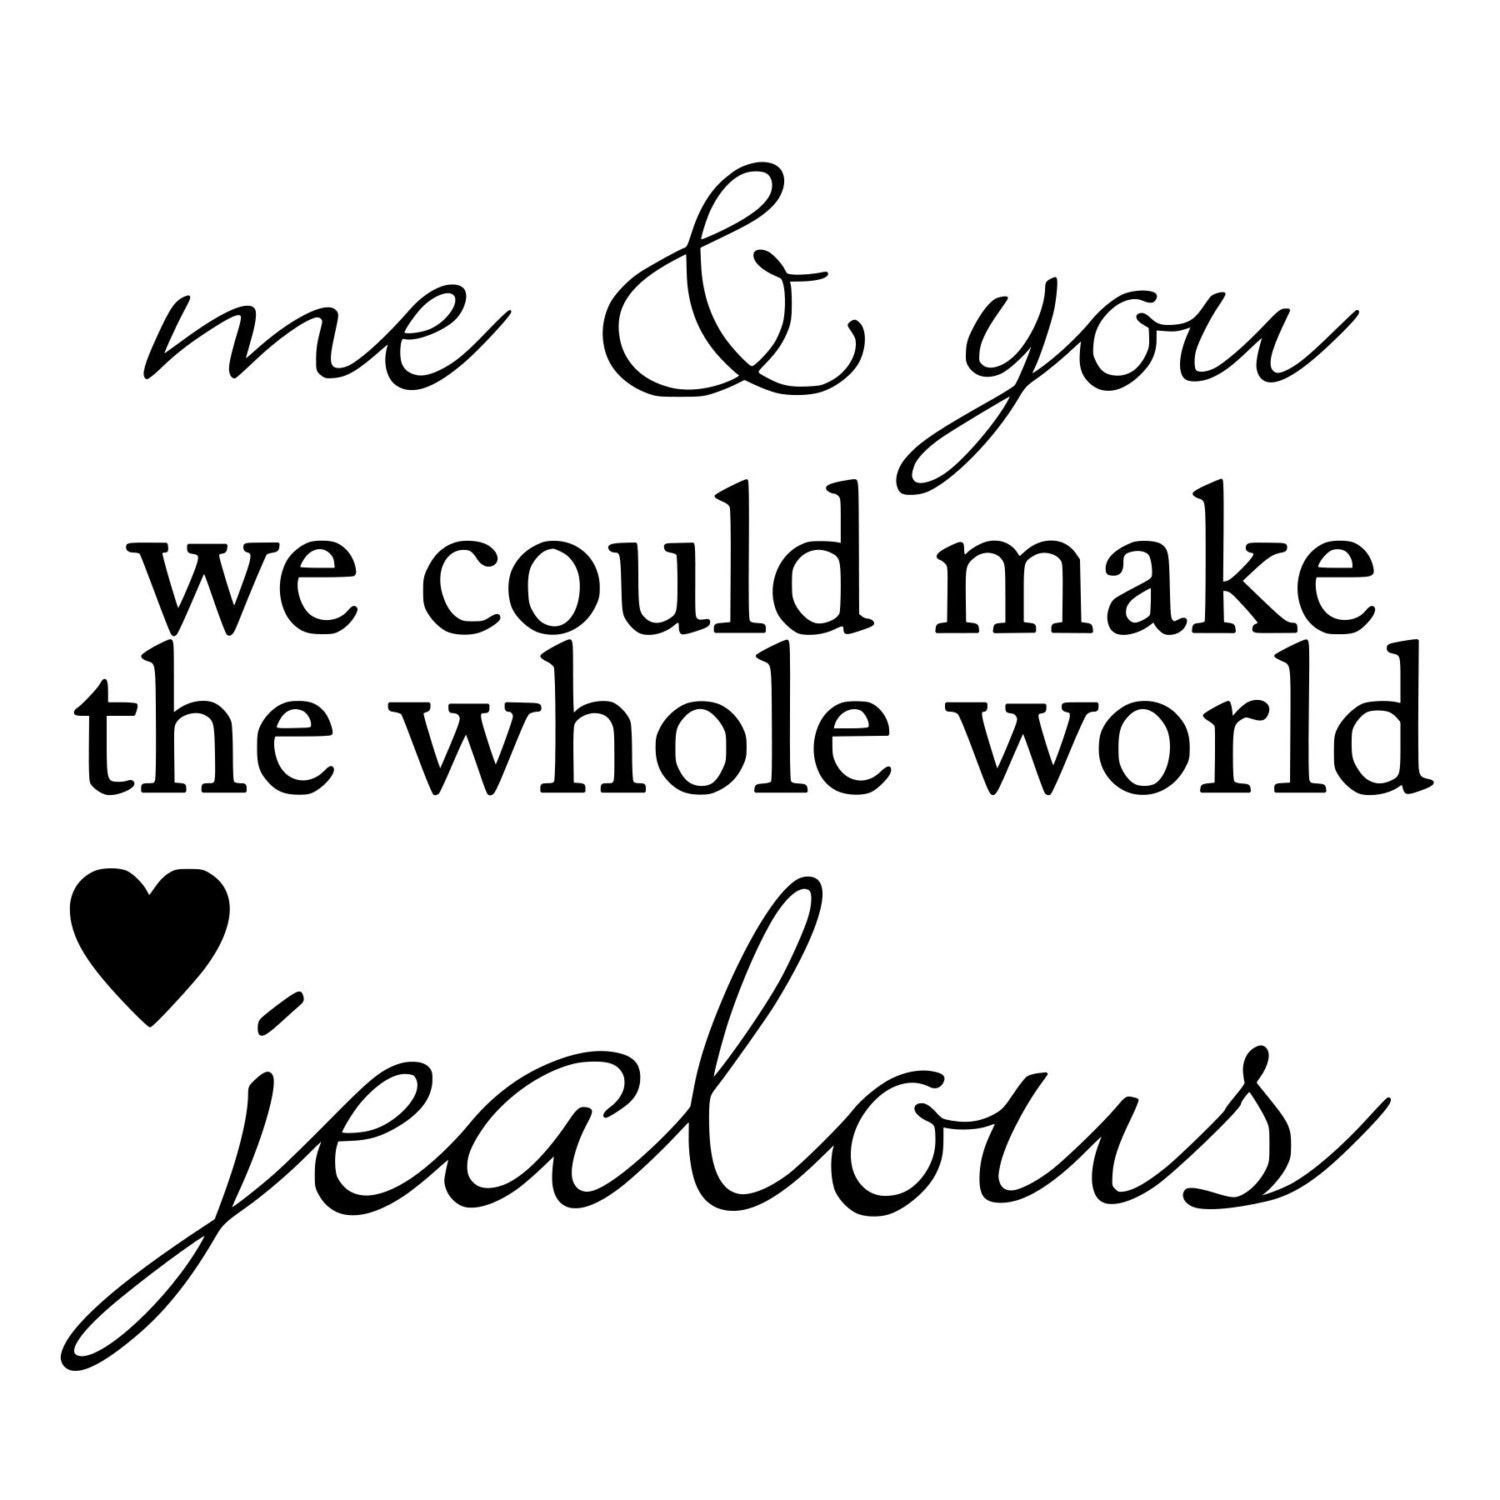 Me And You Could Make The Whole World Jealous Pictures